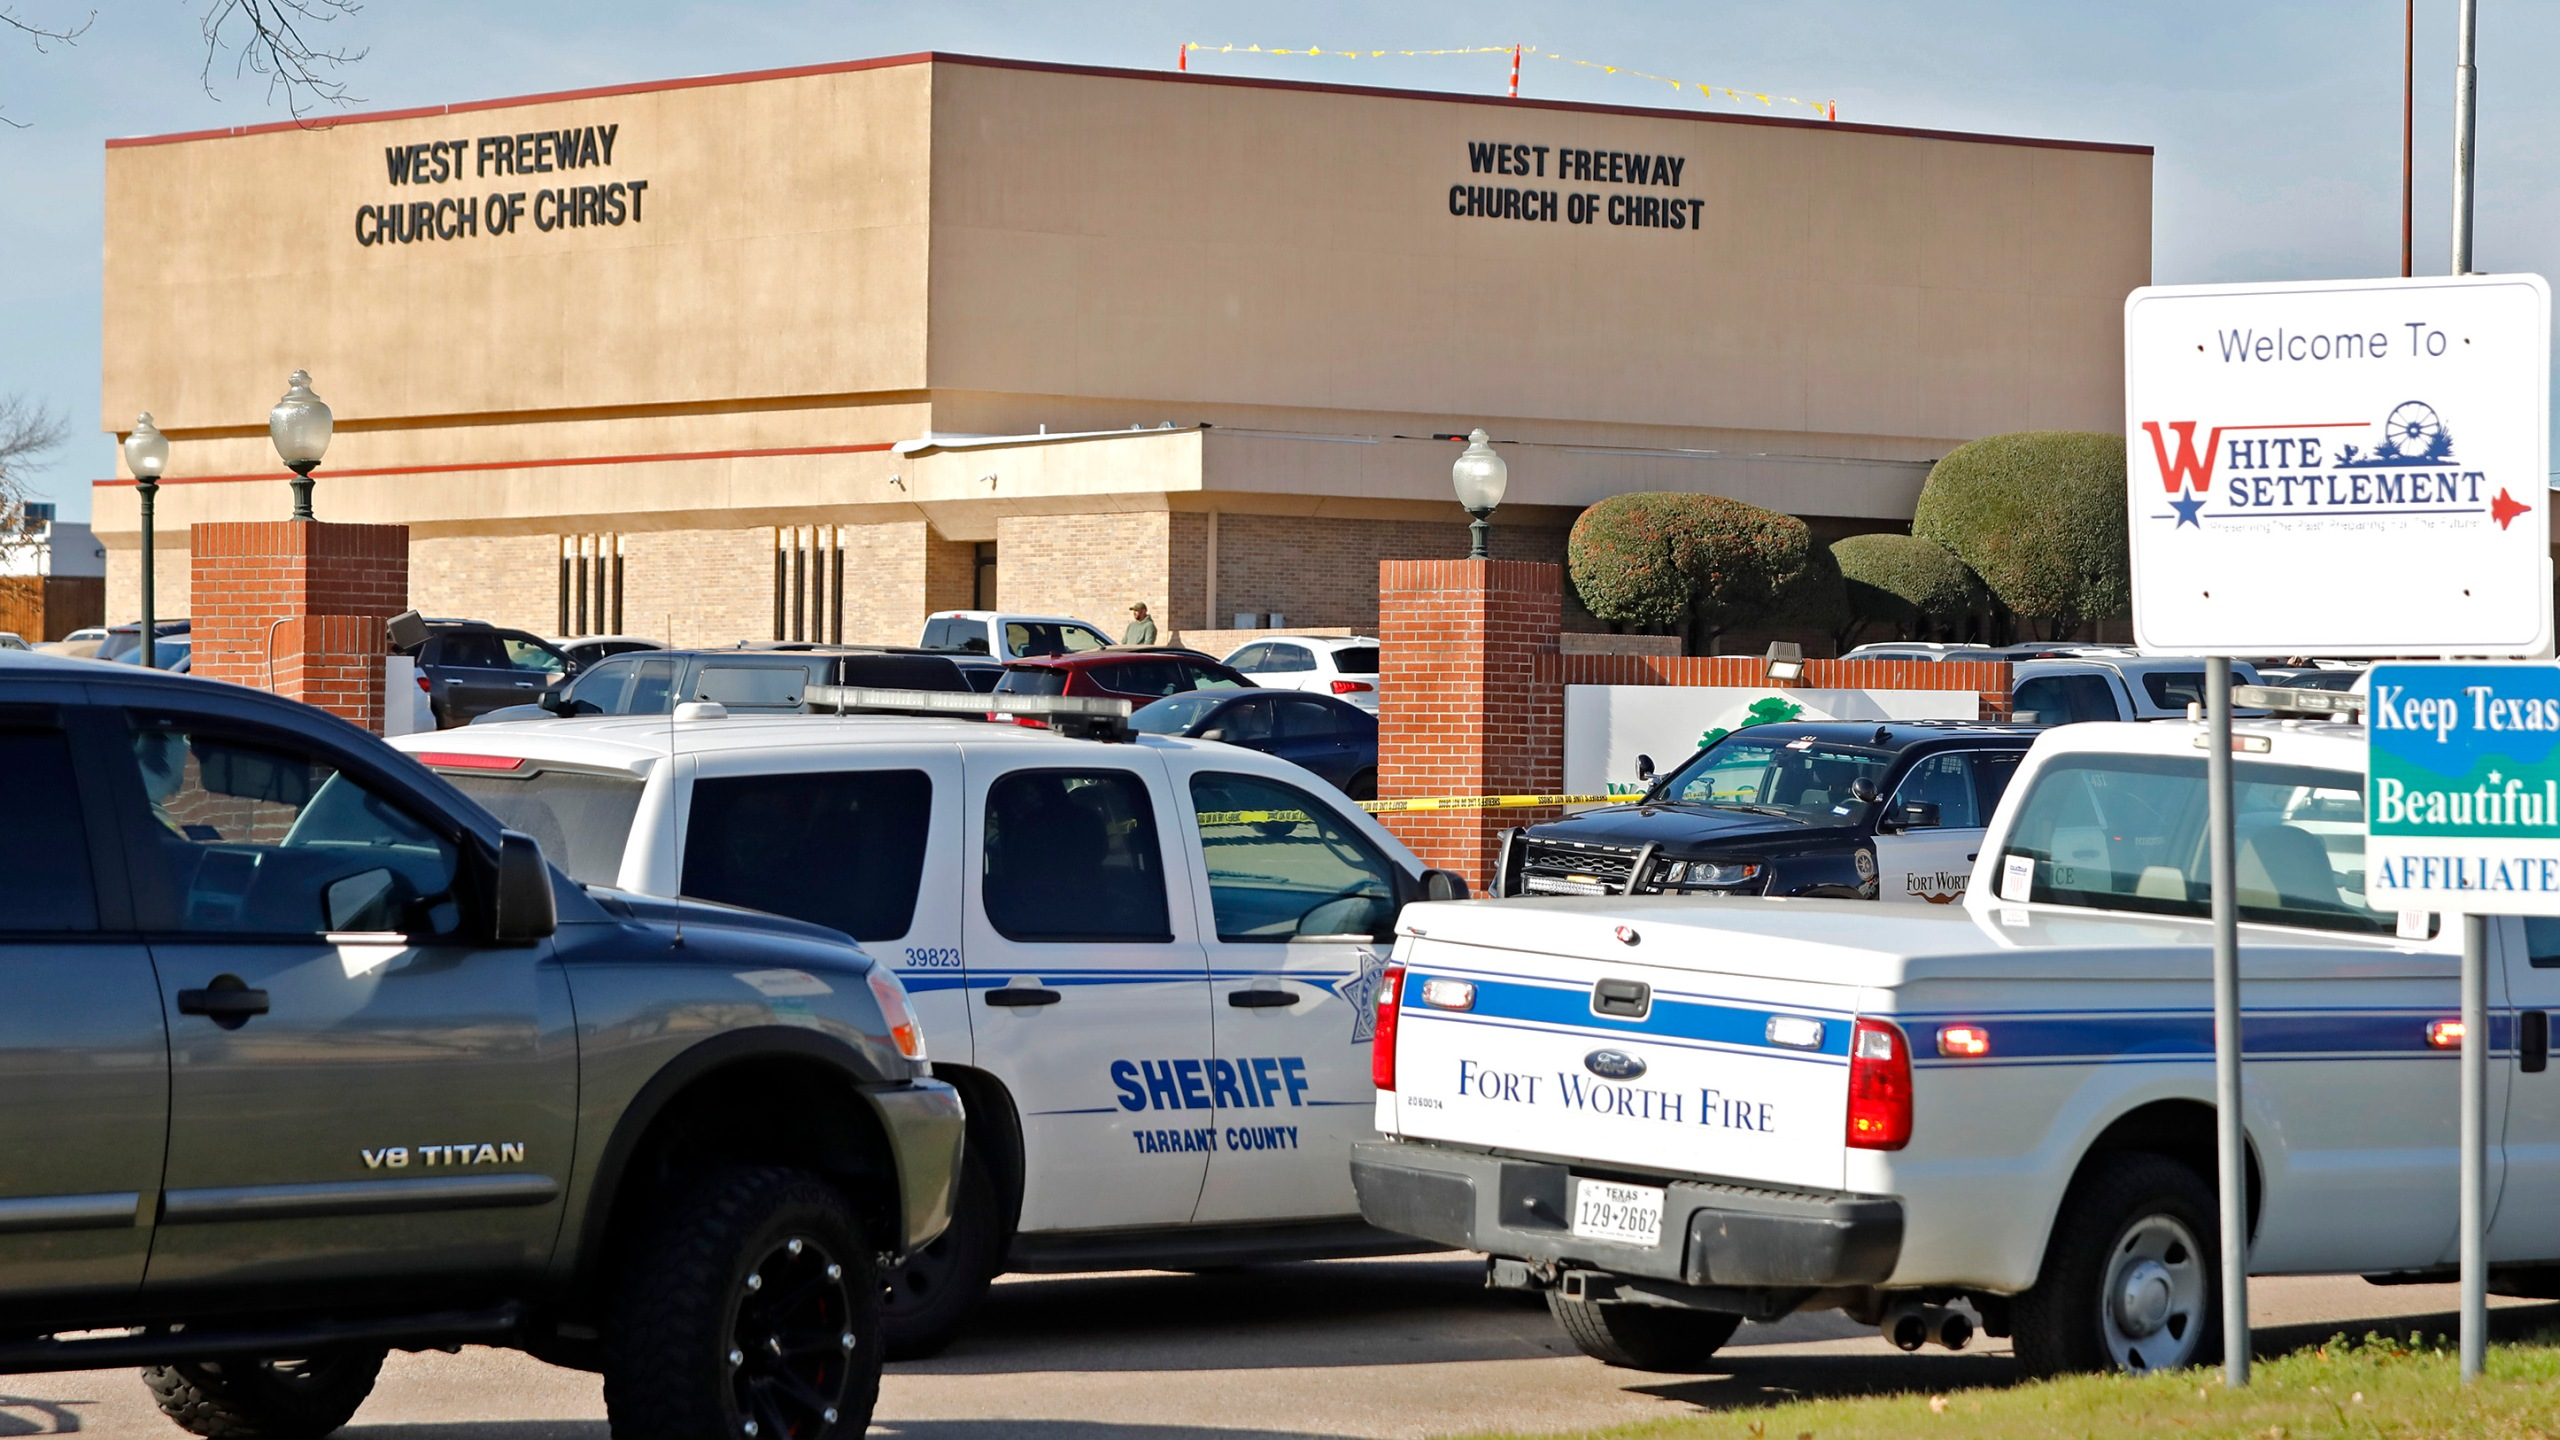 Law enforcement vehicles are parked outside West Freeway Church of Christ where a shooting took place at the morning service on Dec. 29, 2019, in White Settlement, Texas. (Credit: Stewart F. House/Getty Images)